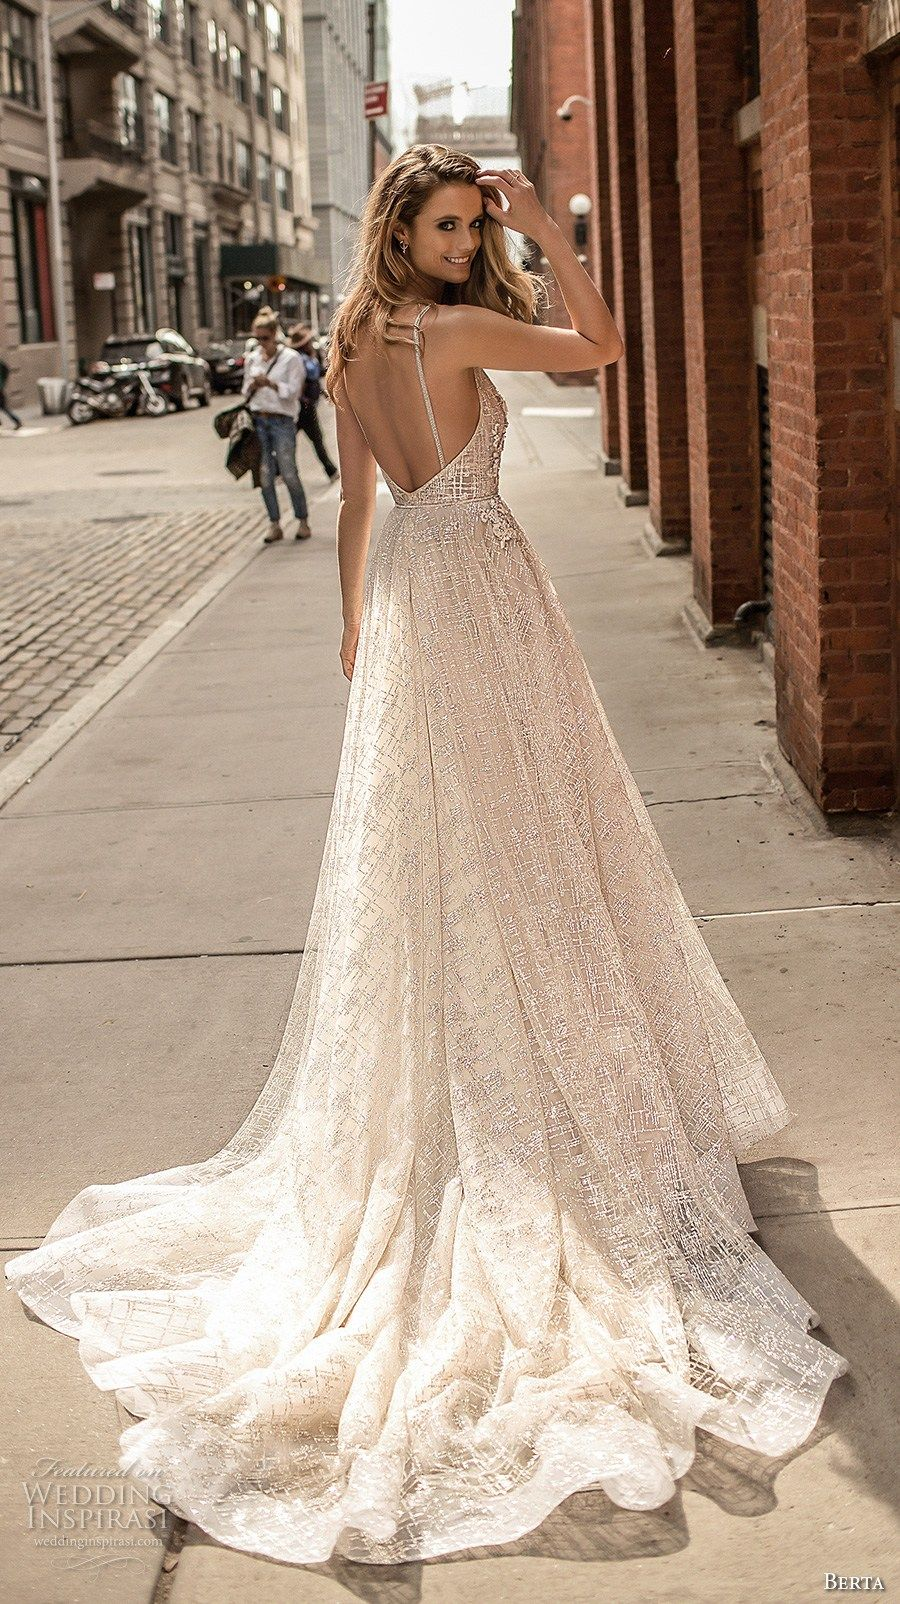 Berta bridal spring wedding dresses part adorable gowns